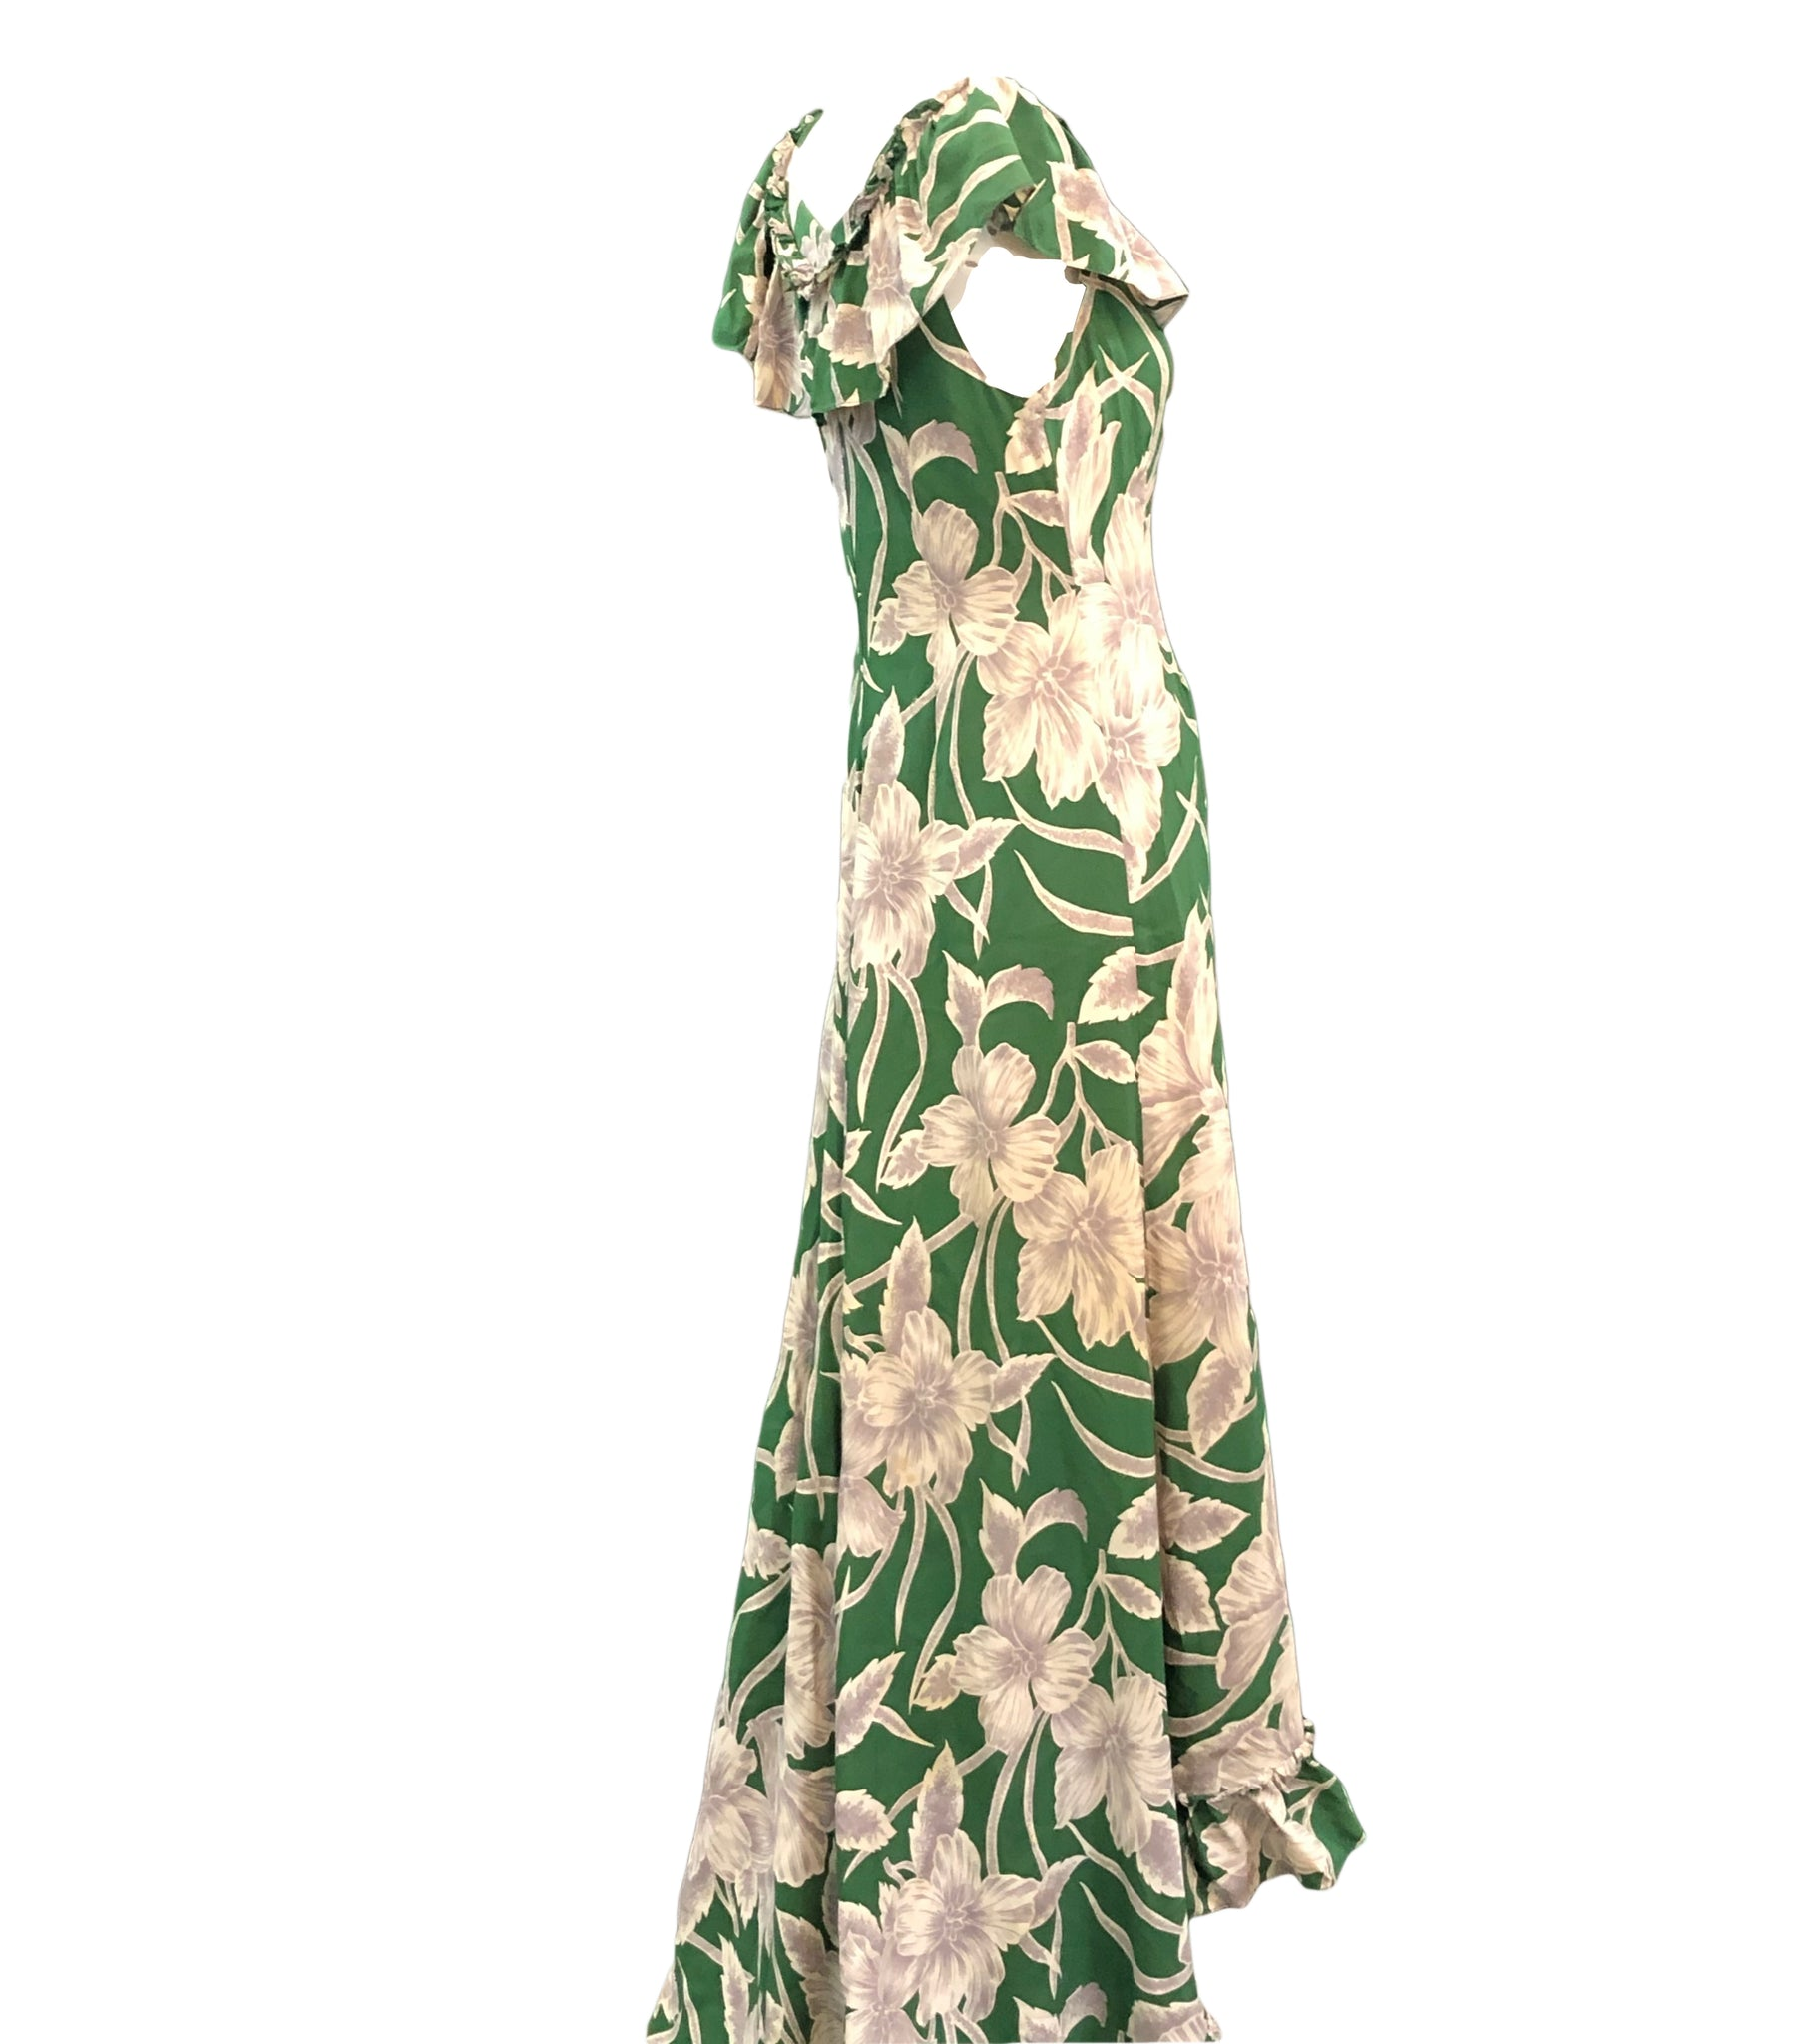 Incredible 1940s Green  Rayon Print Holoku Dress Side 2 of 7